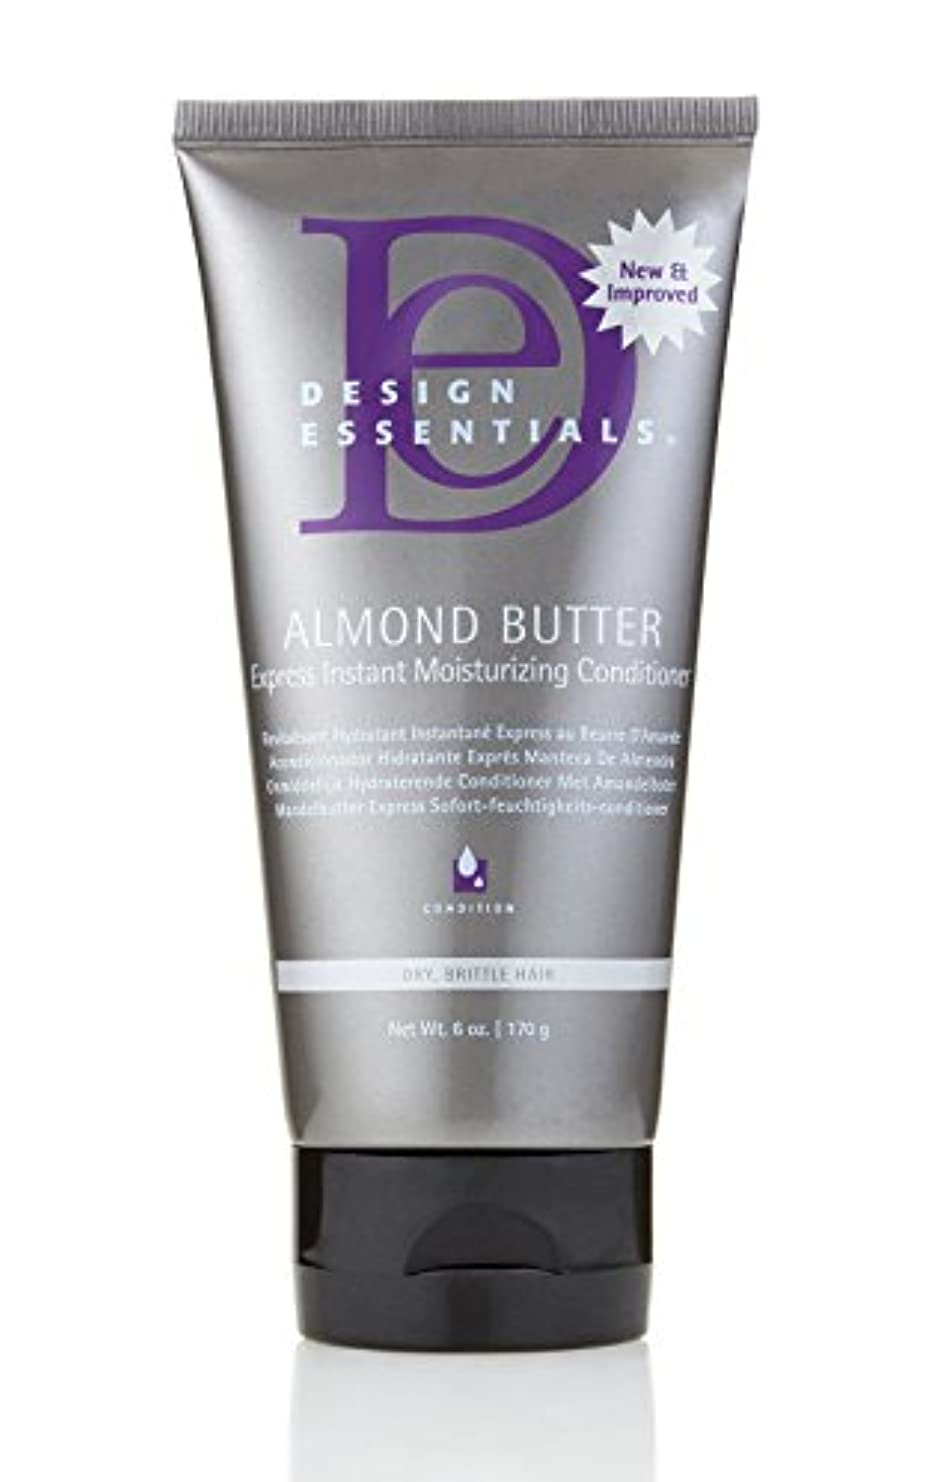 Design Essentials Almond Butter Express Instant Moisturizing Conditioner - 6oz.